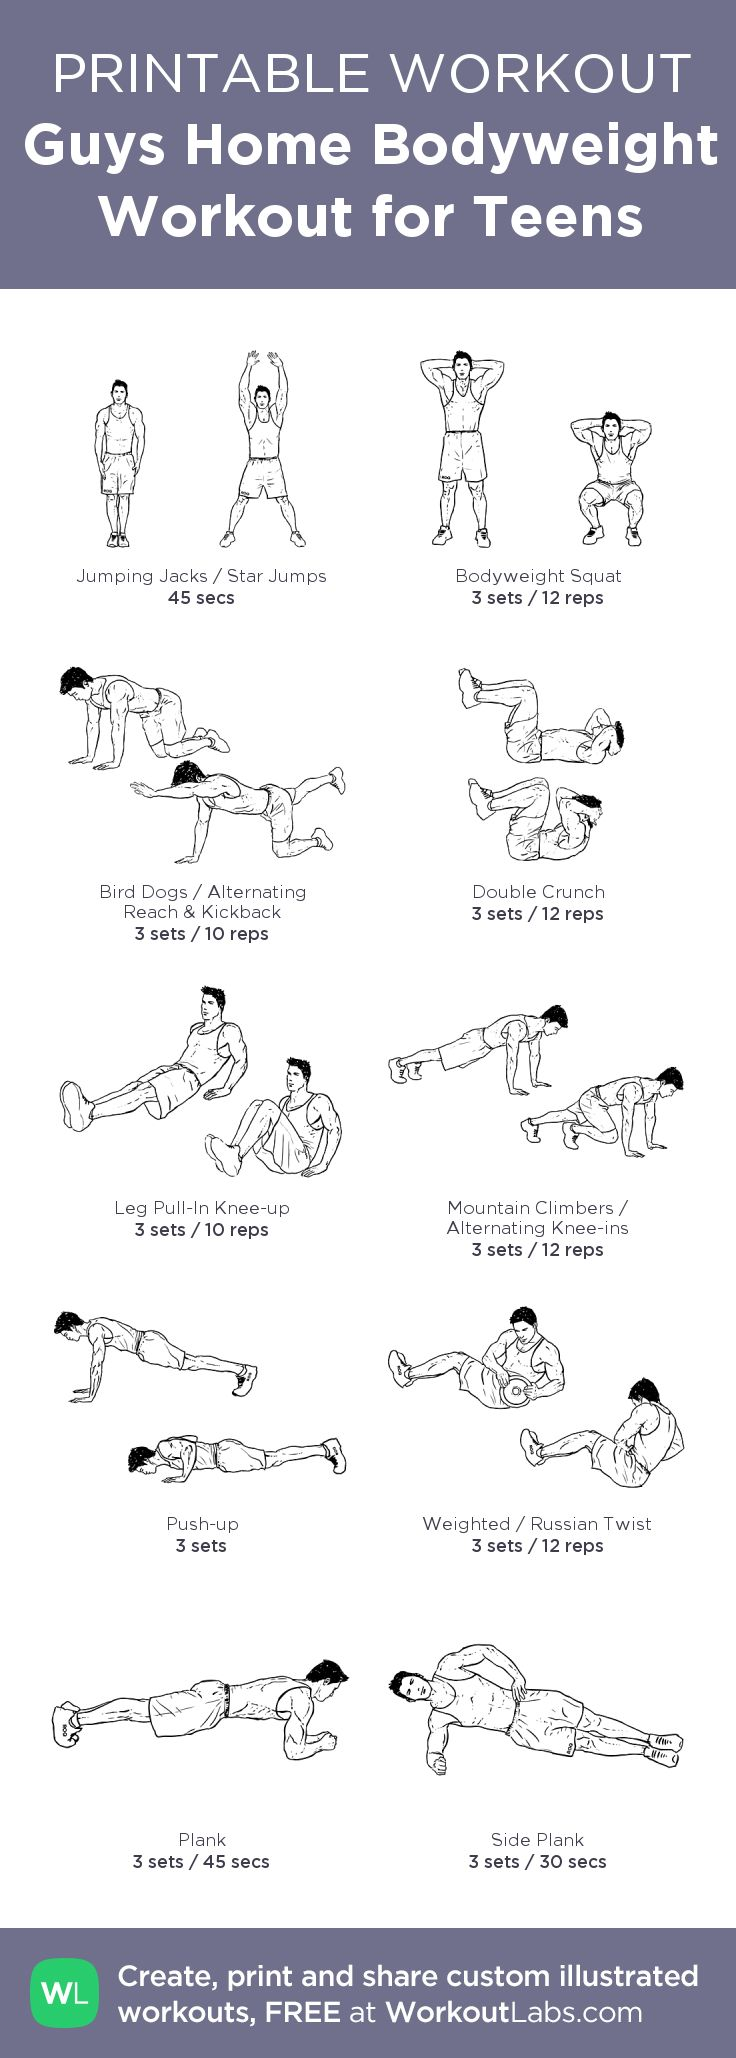 Best ideas about guy workouts on pinterest fitness